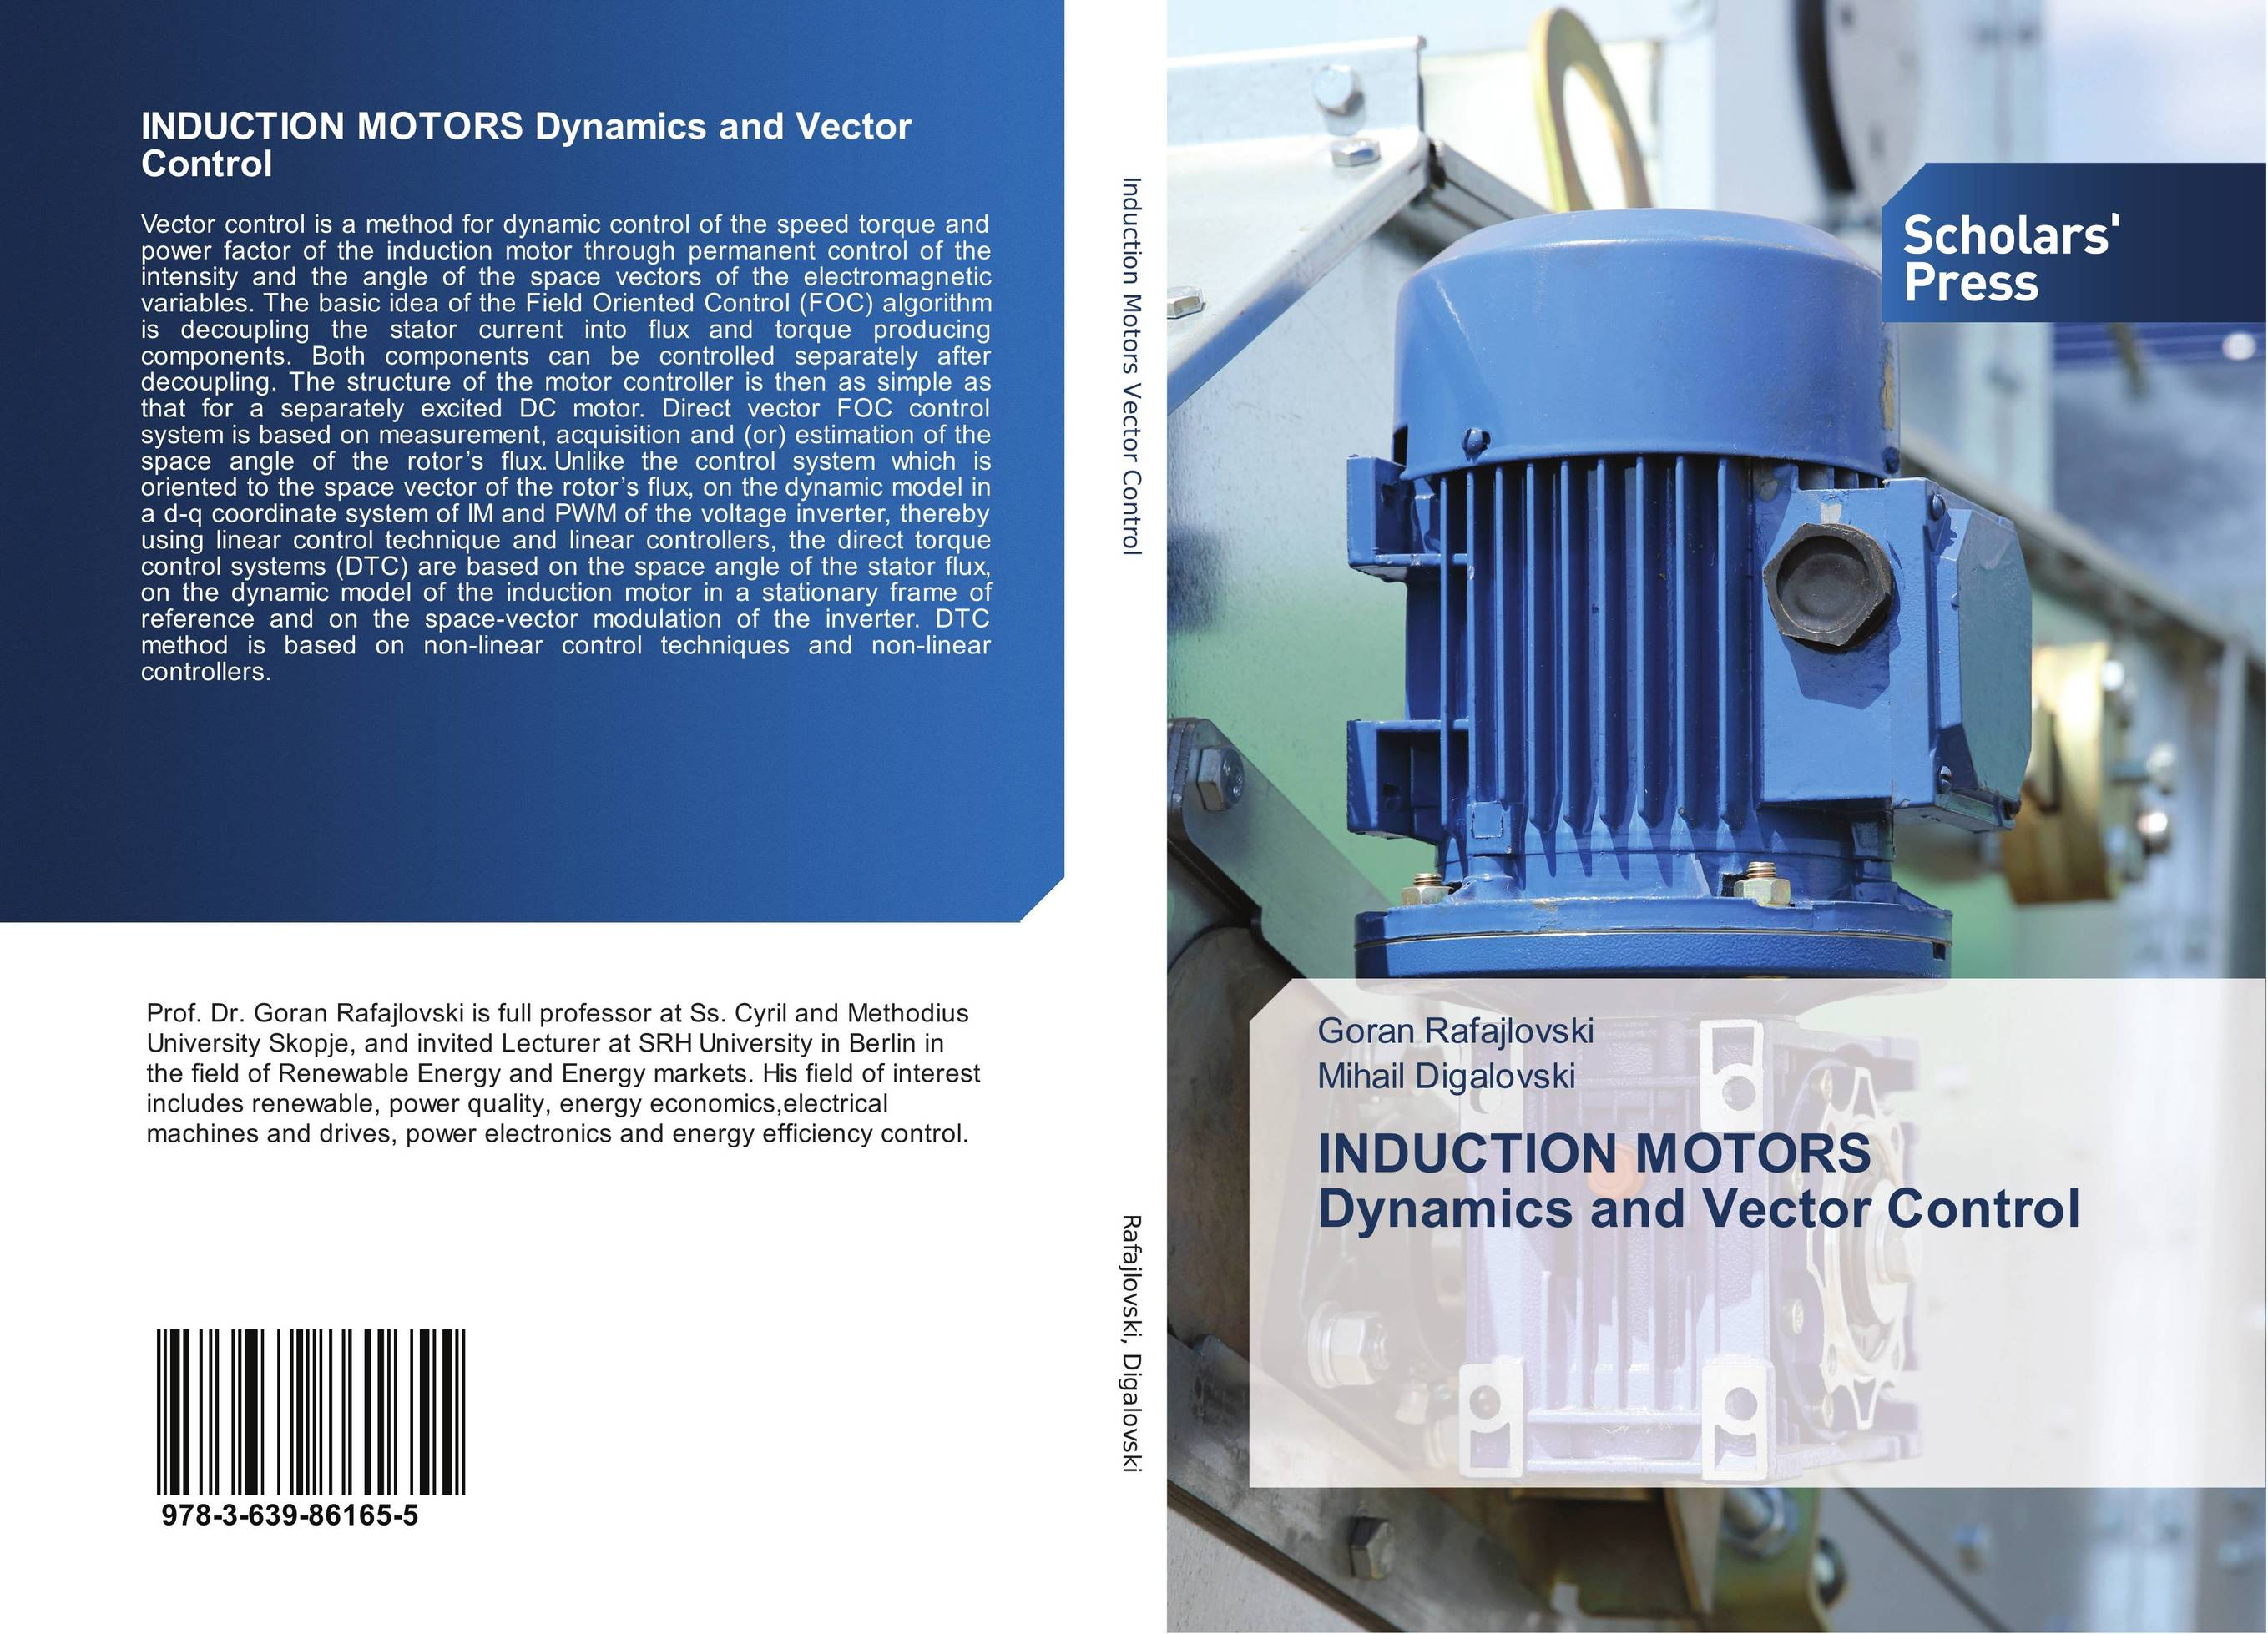 INDUCTION MOTORS Dynamics and Vector Control complete dynamic analysis of stewart platform based on workspace